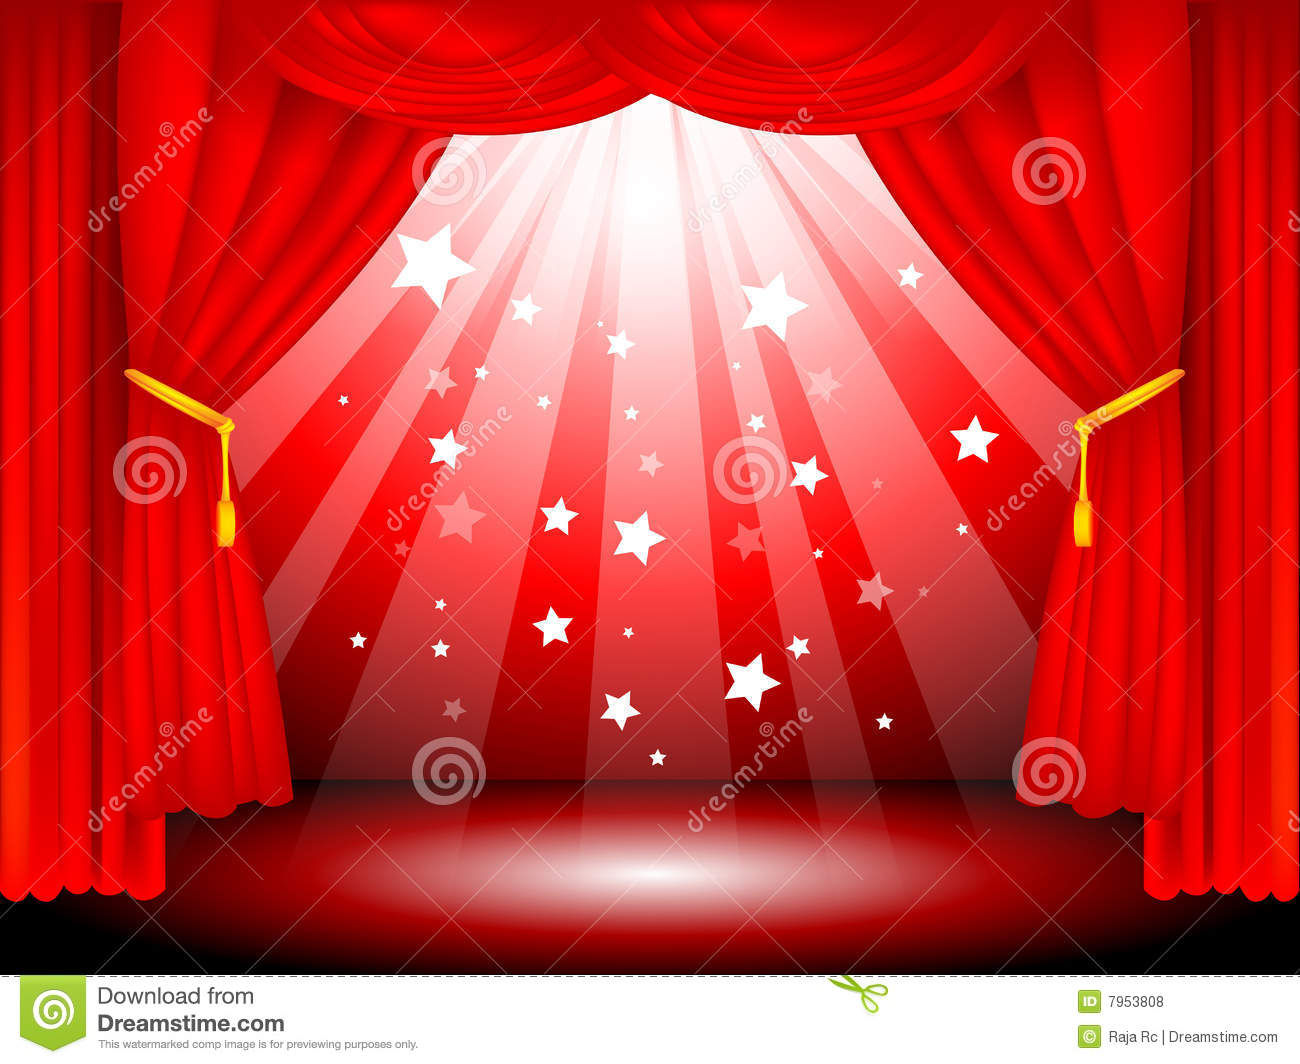 Image Result For Stage Curtains Animation